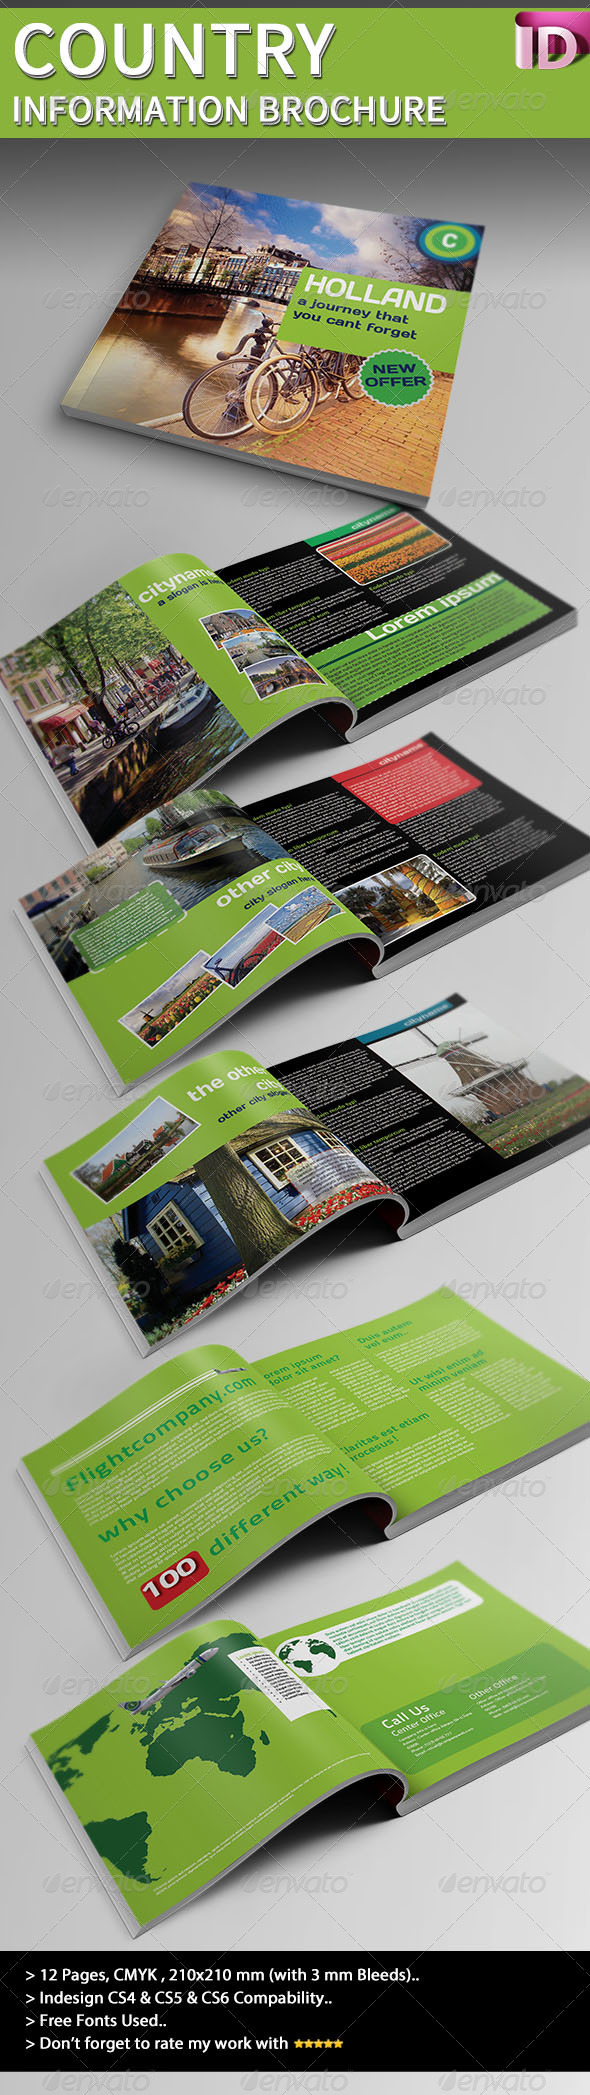 Country Information Brochure - Corporate Brochures